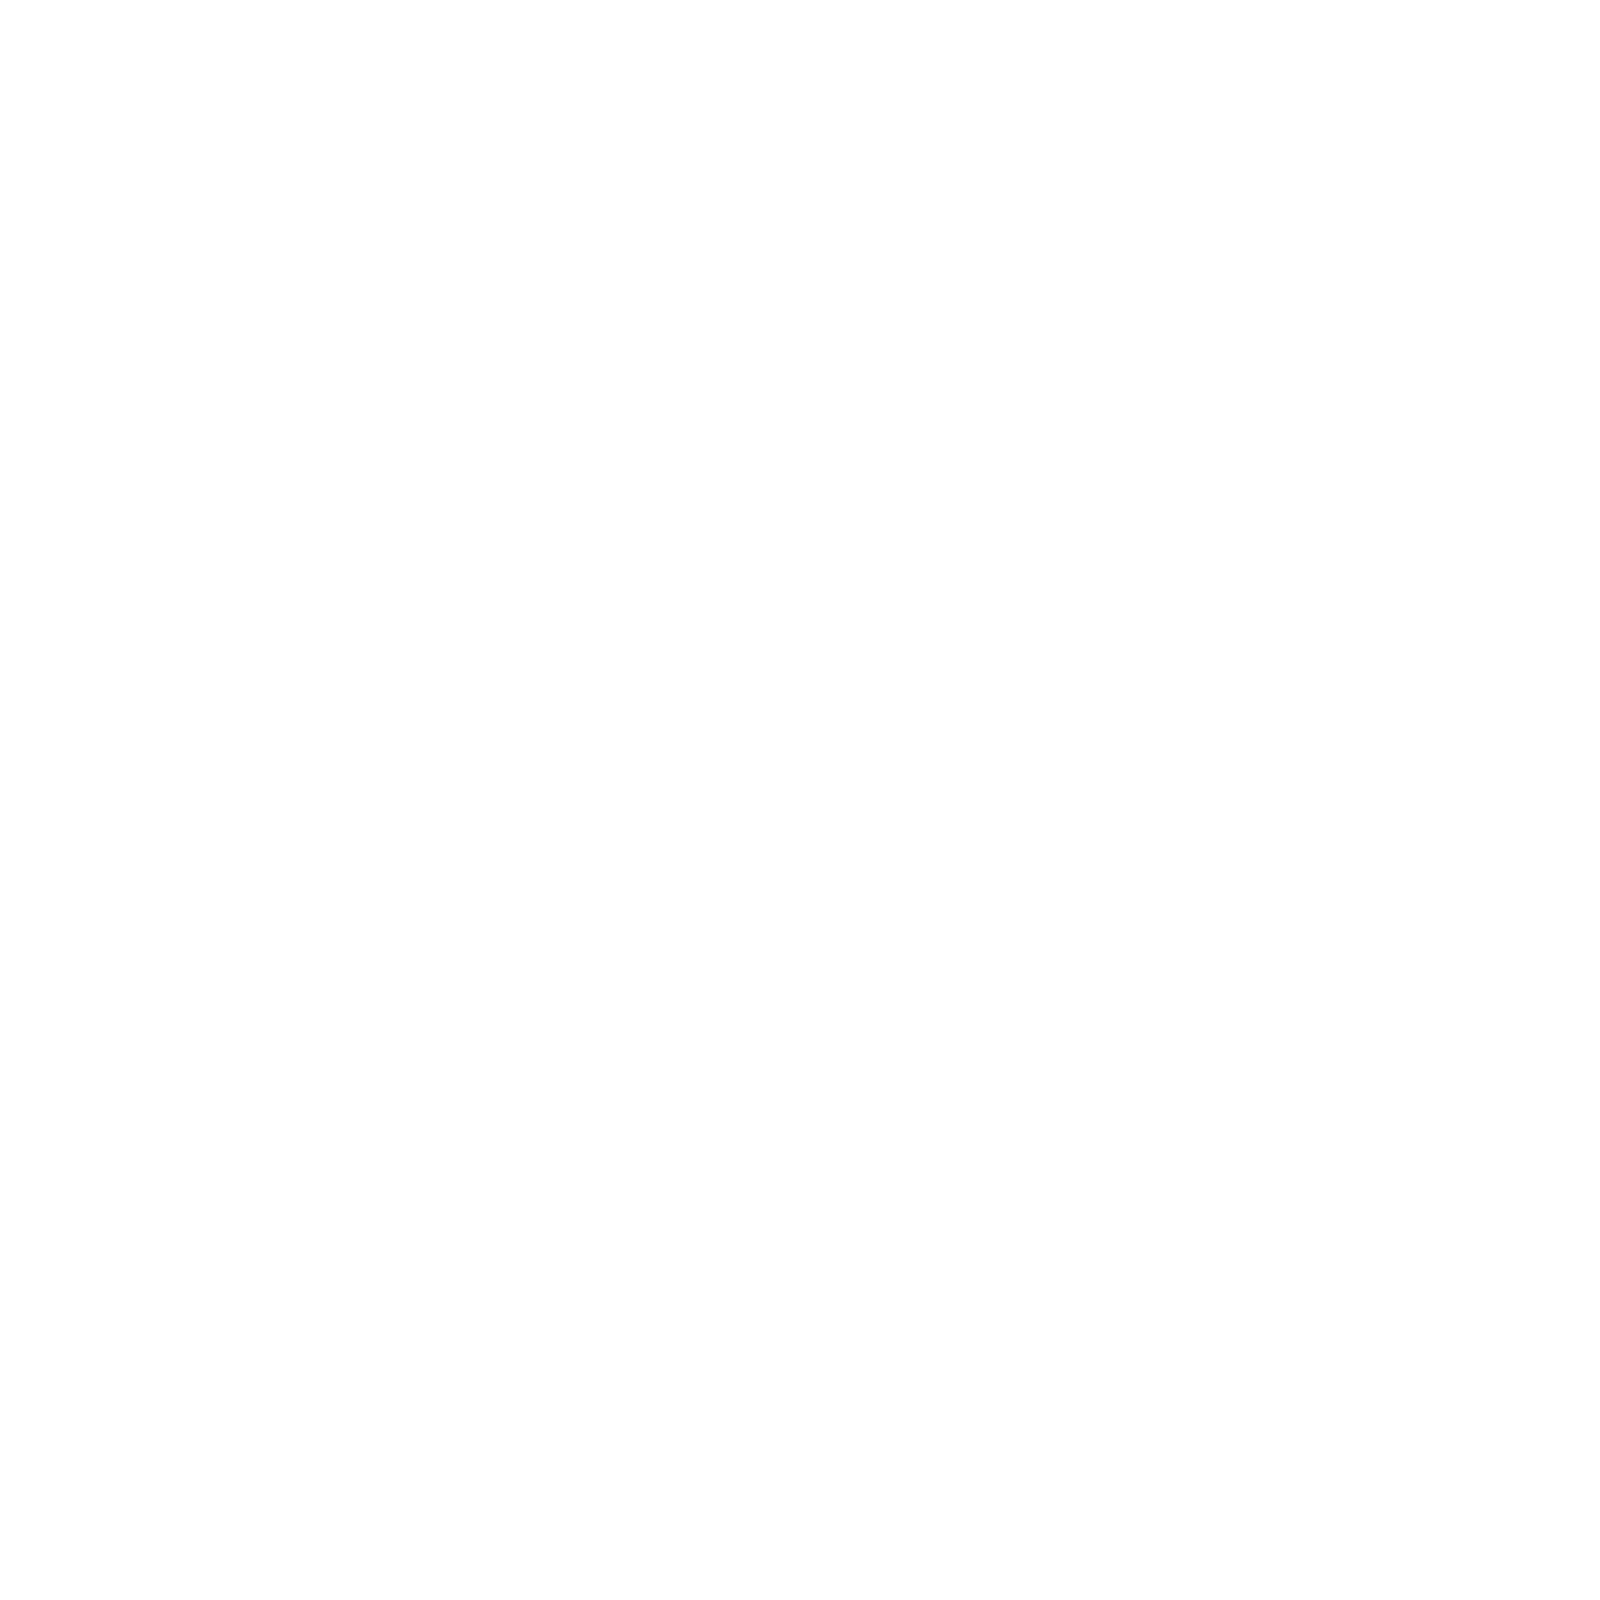 hart-brown-project-logo